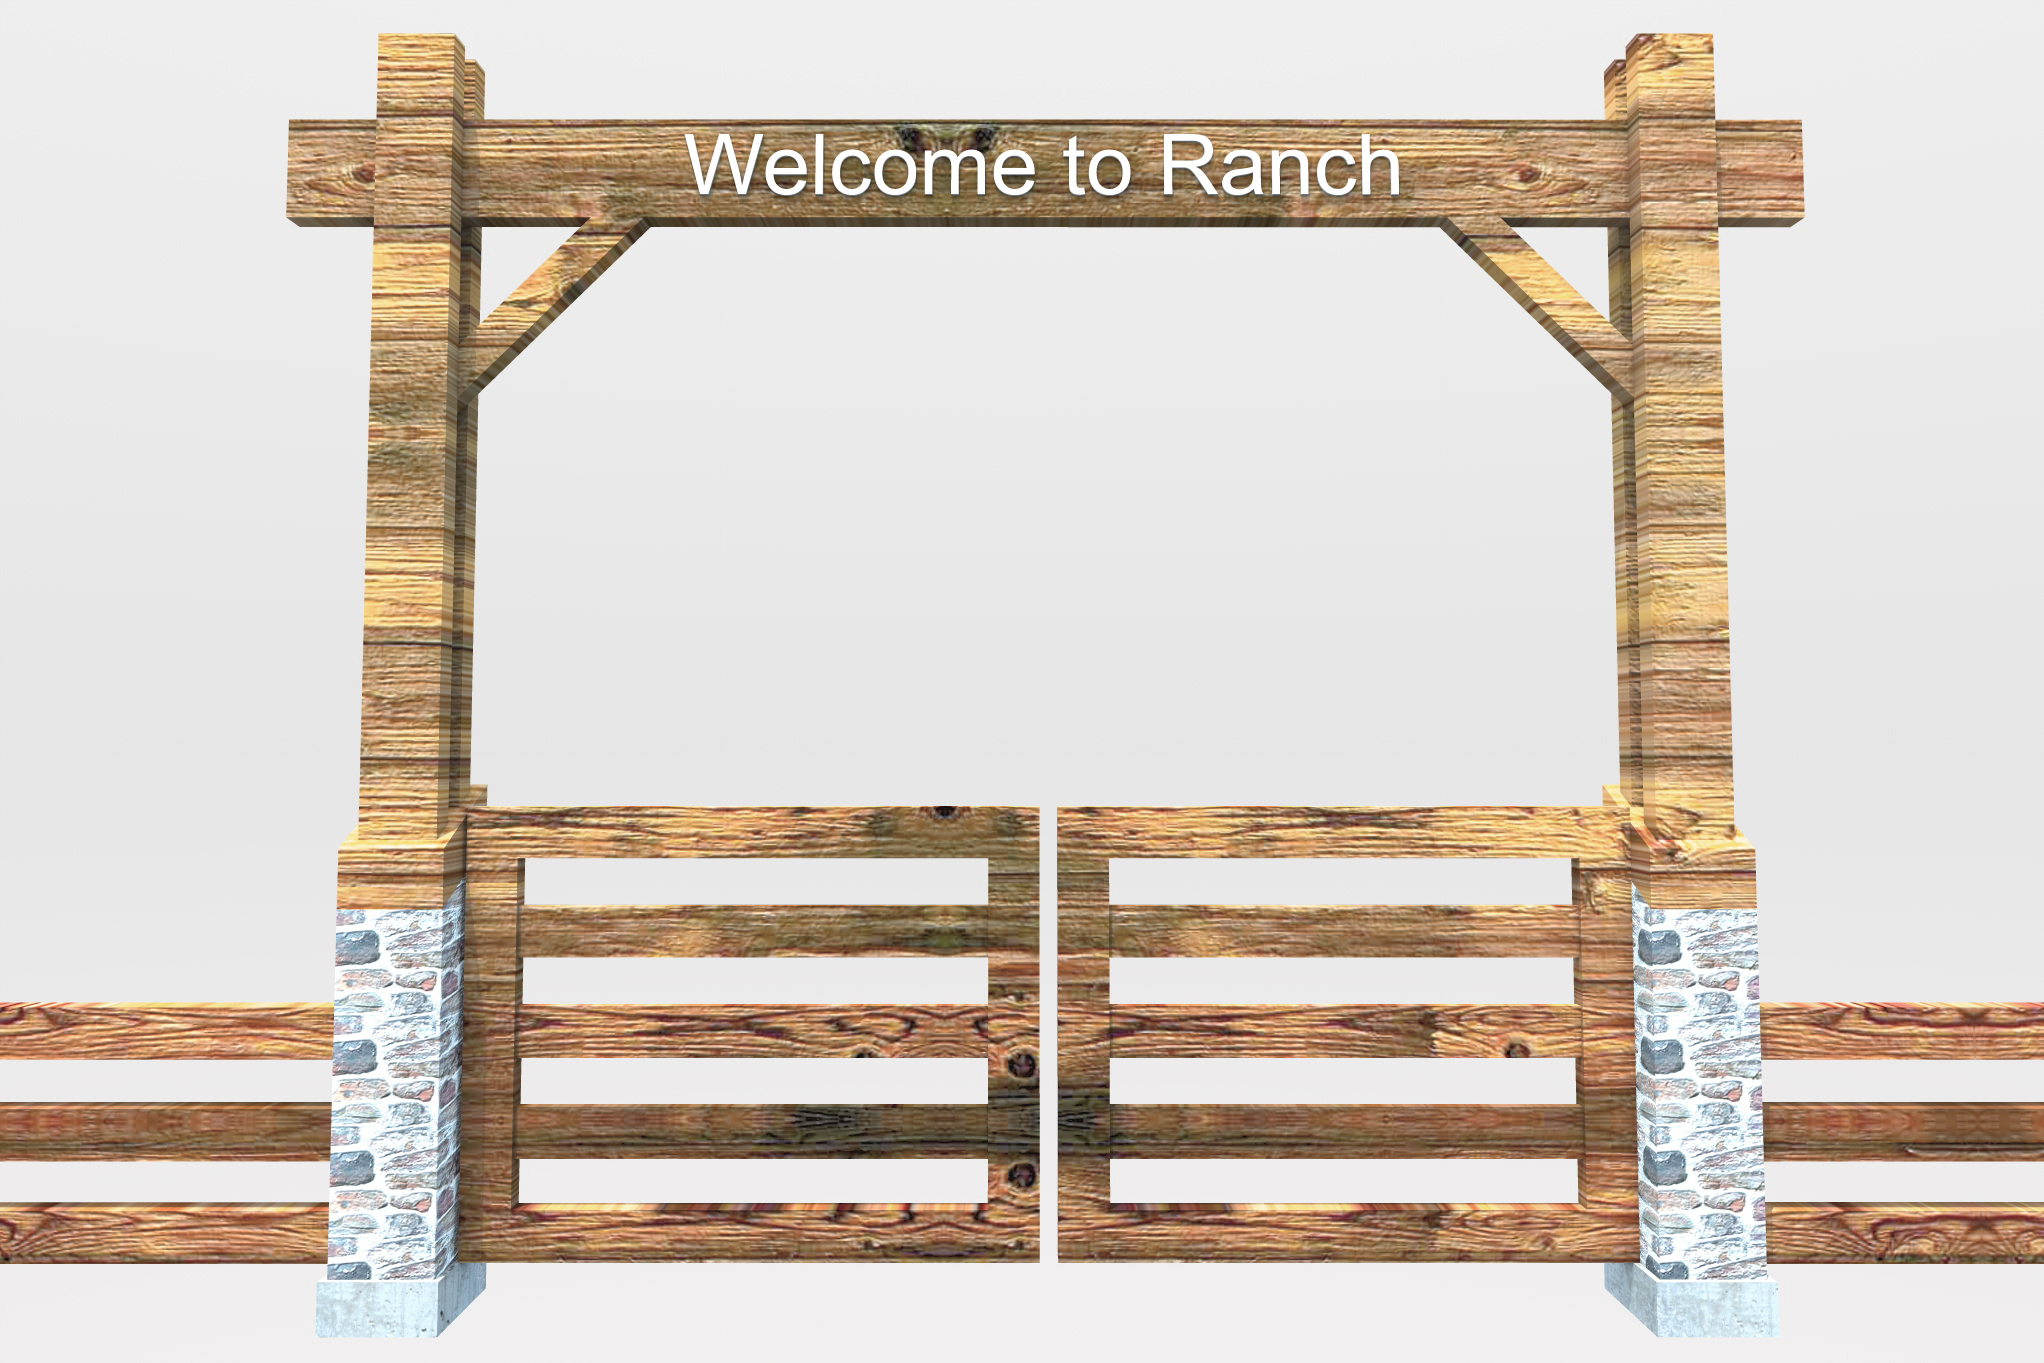 Ranch Fence Gate To A Design To A Clipart - Clipart Kid